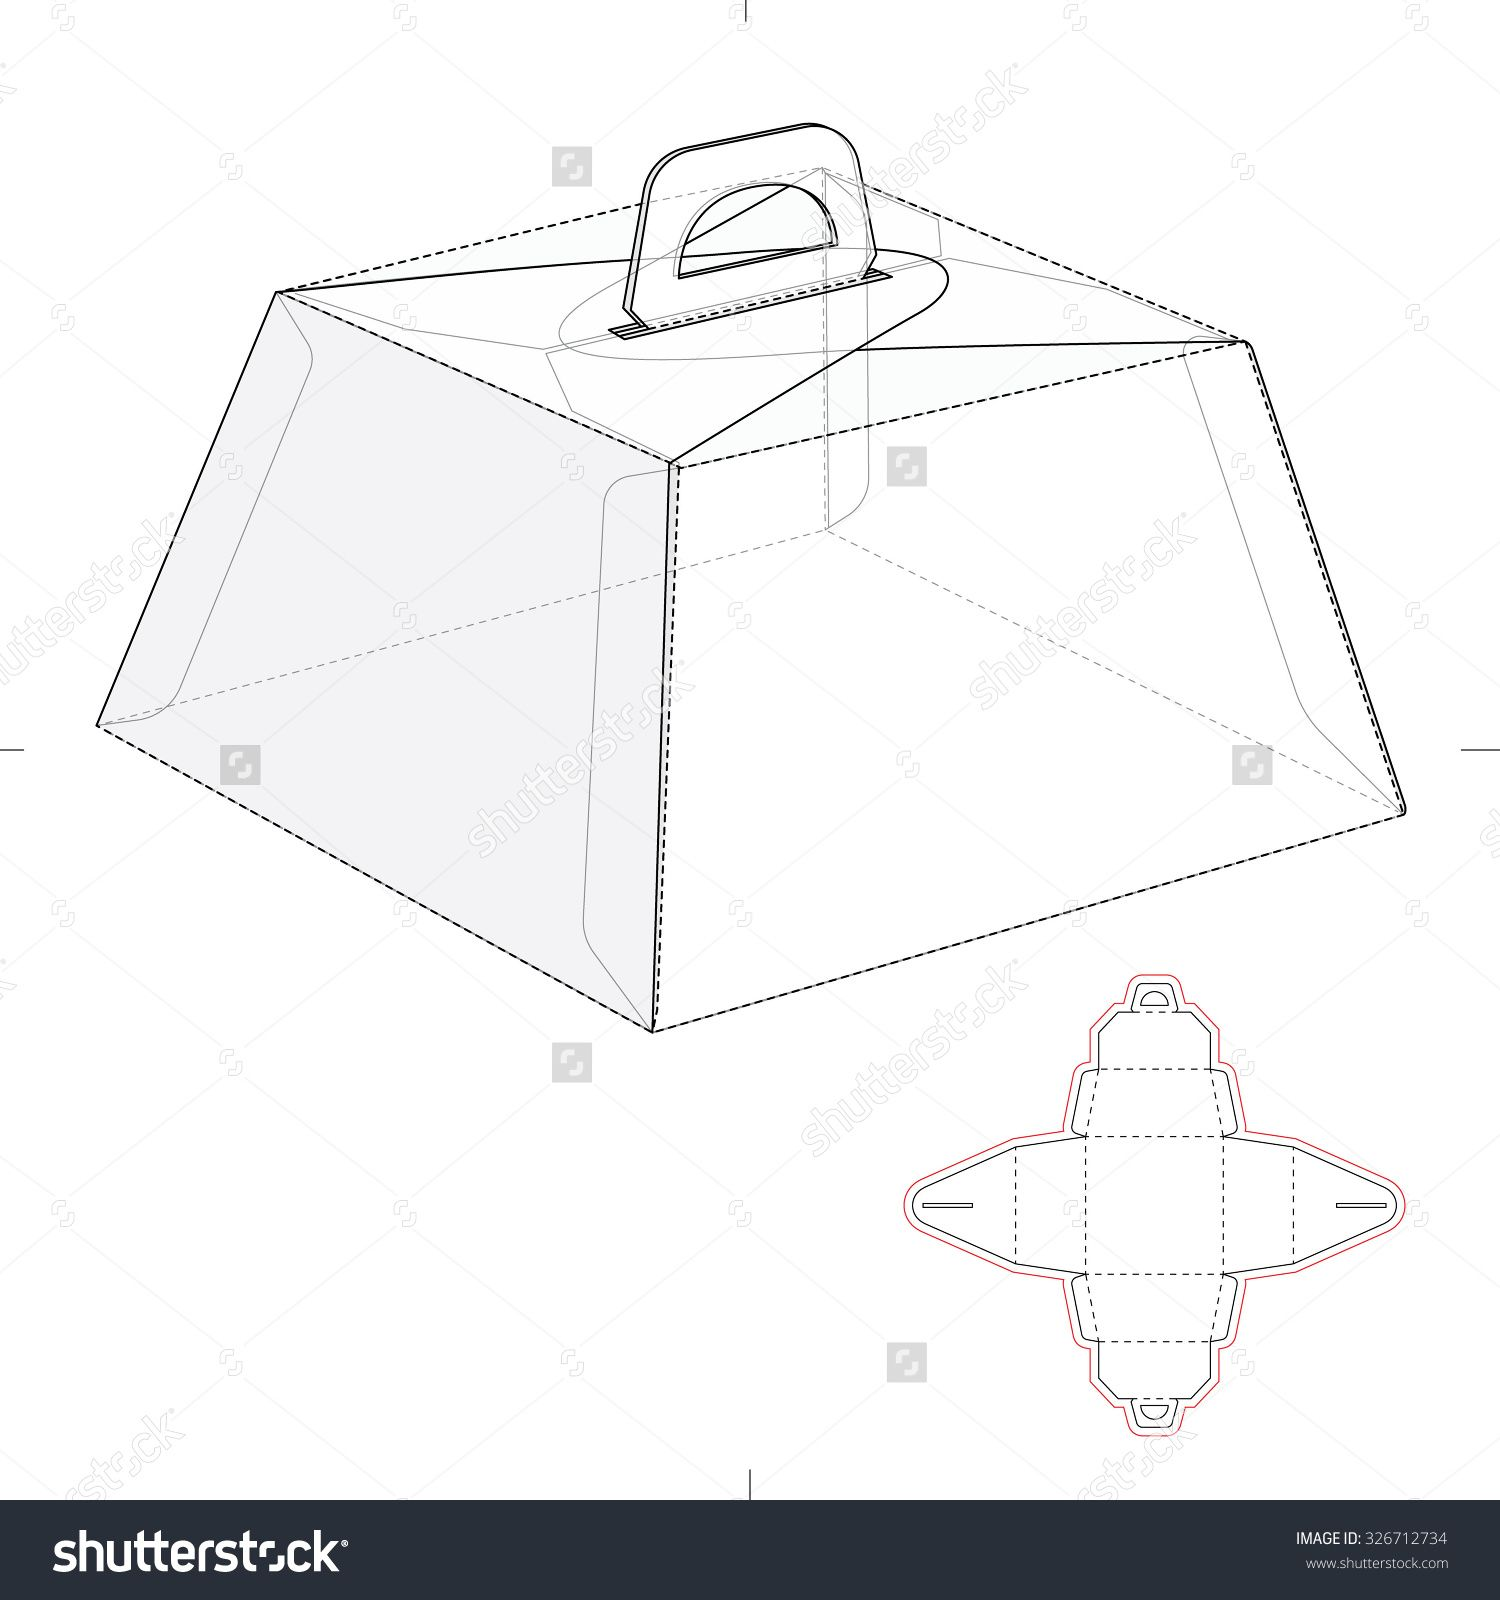 Caring birthday cake box with die line template stock vector caring birthday cake box with die line template stock vector illustration 326712734 shutterstock pronofoot35fo Choice Image